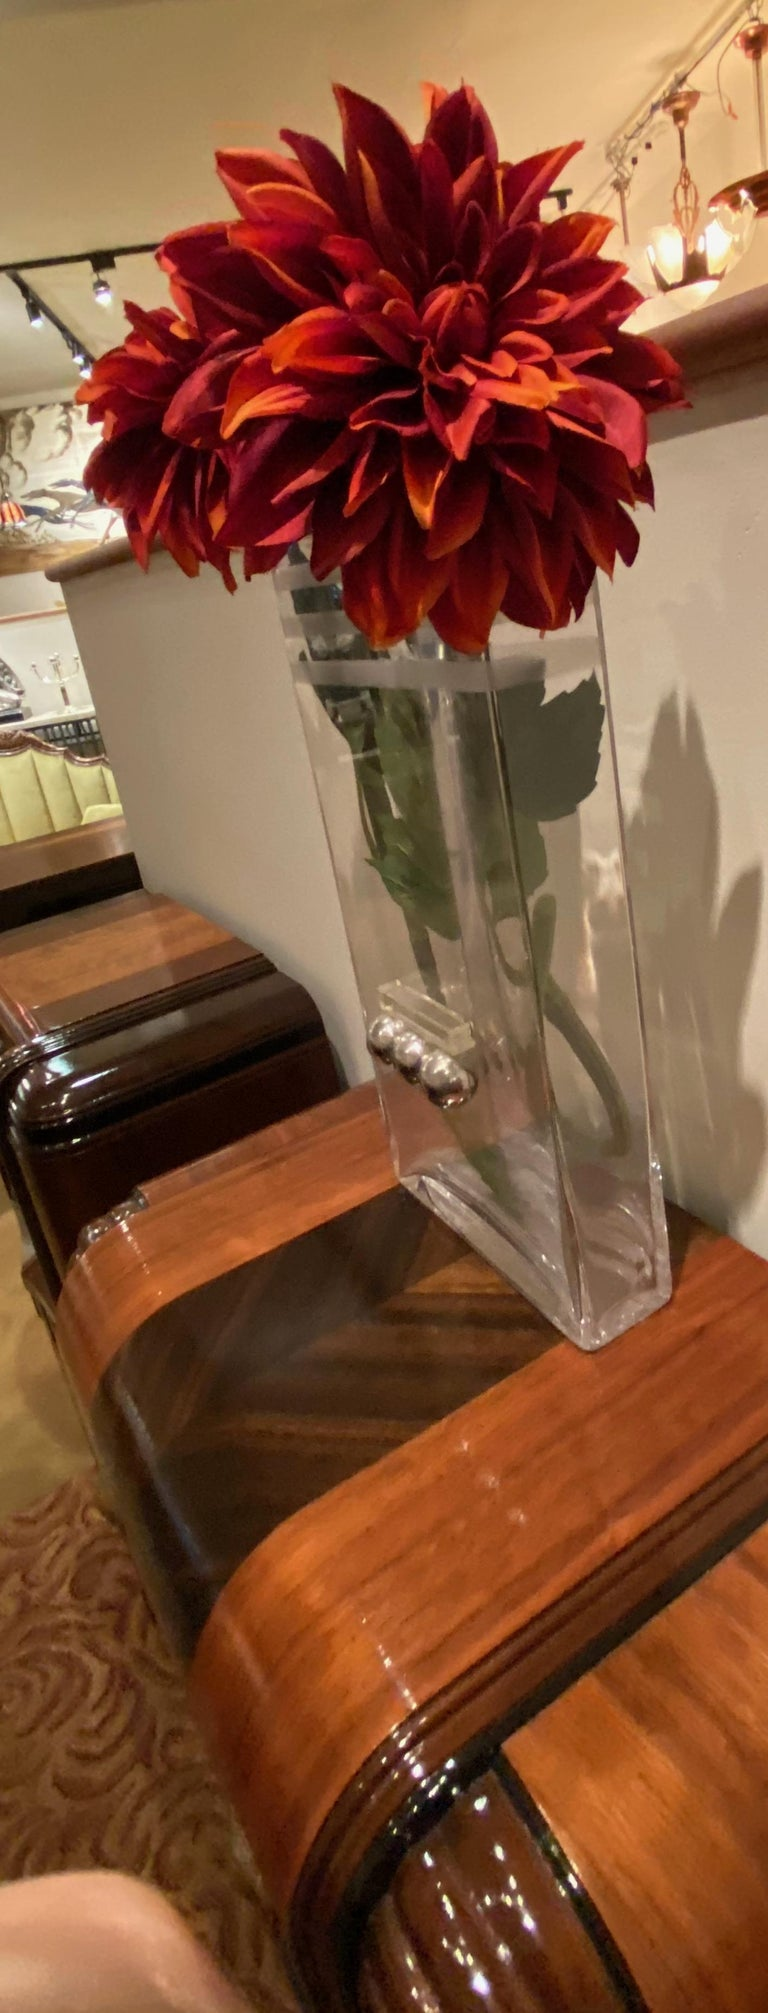 Mid-20th Century French Art Deco Glass and Chrome Streamlined Vase by Riecke For Sale